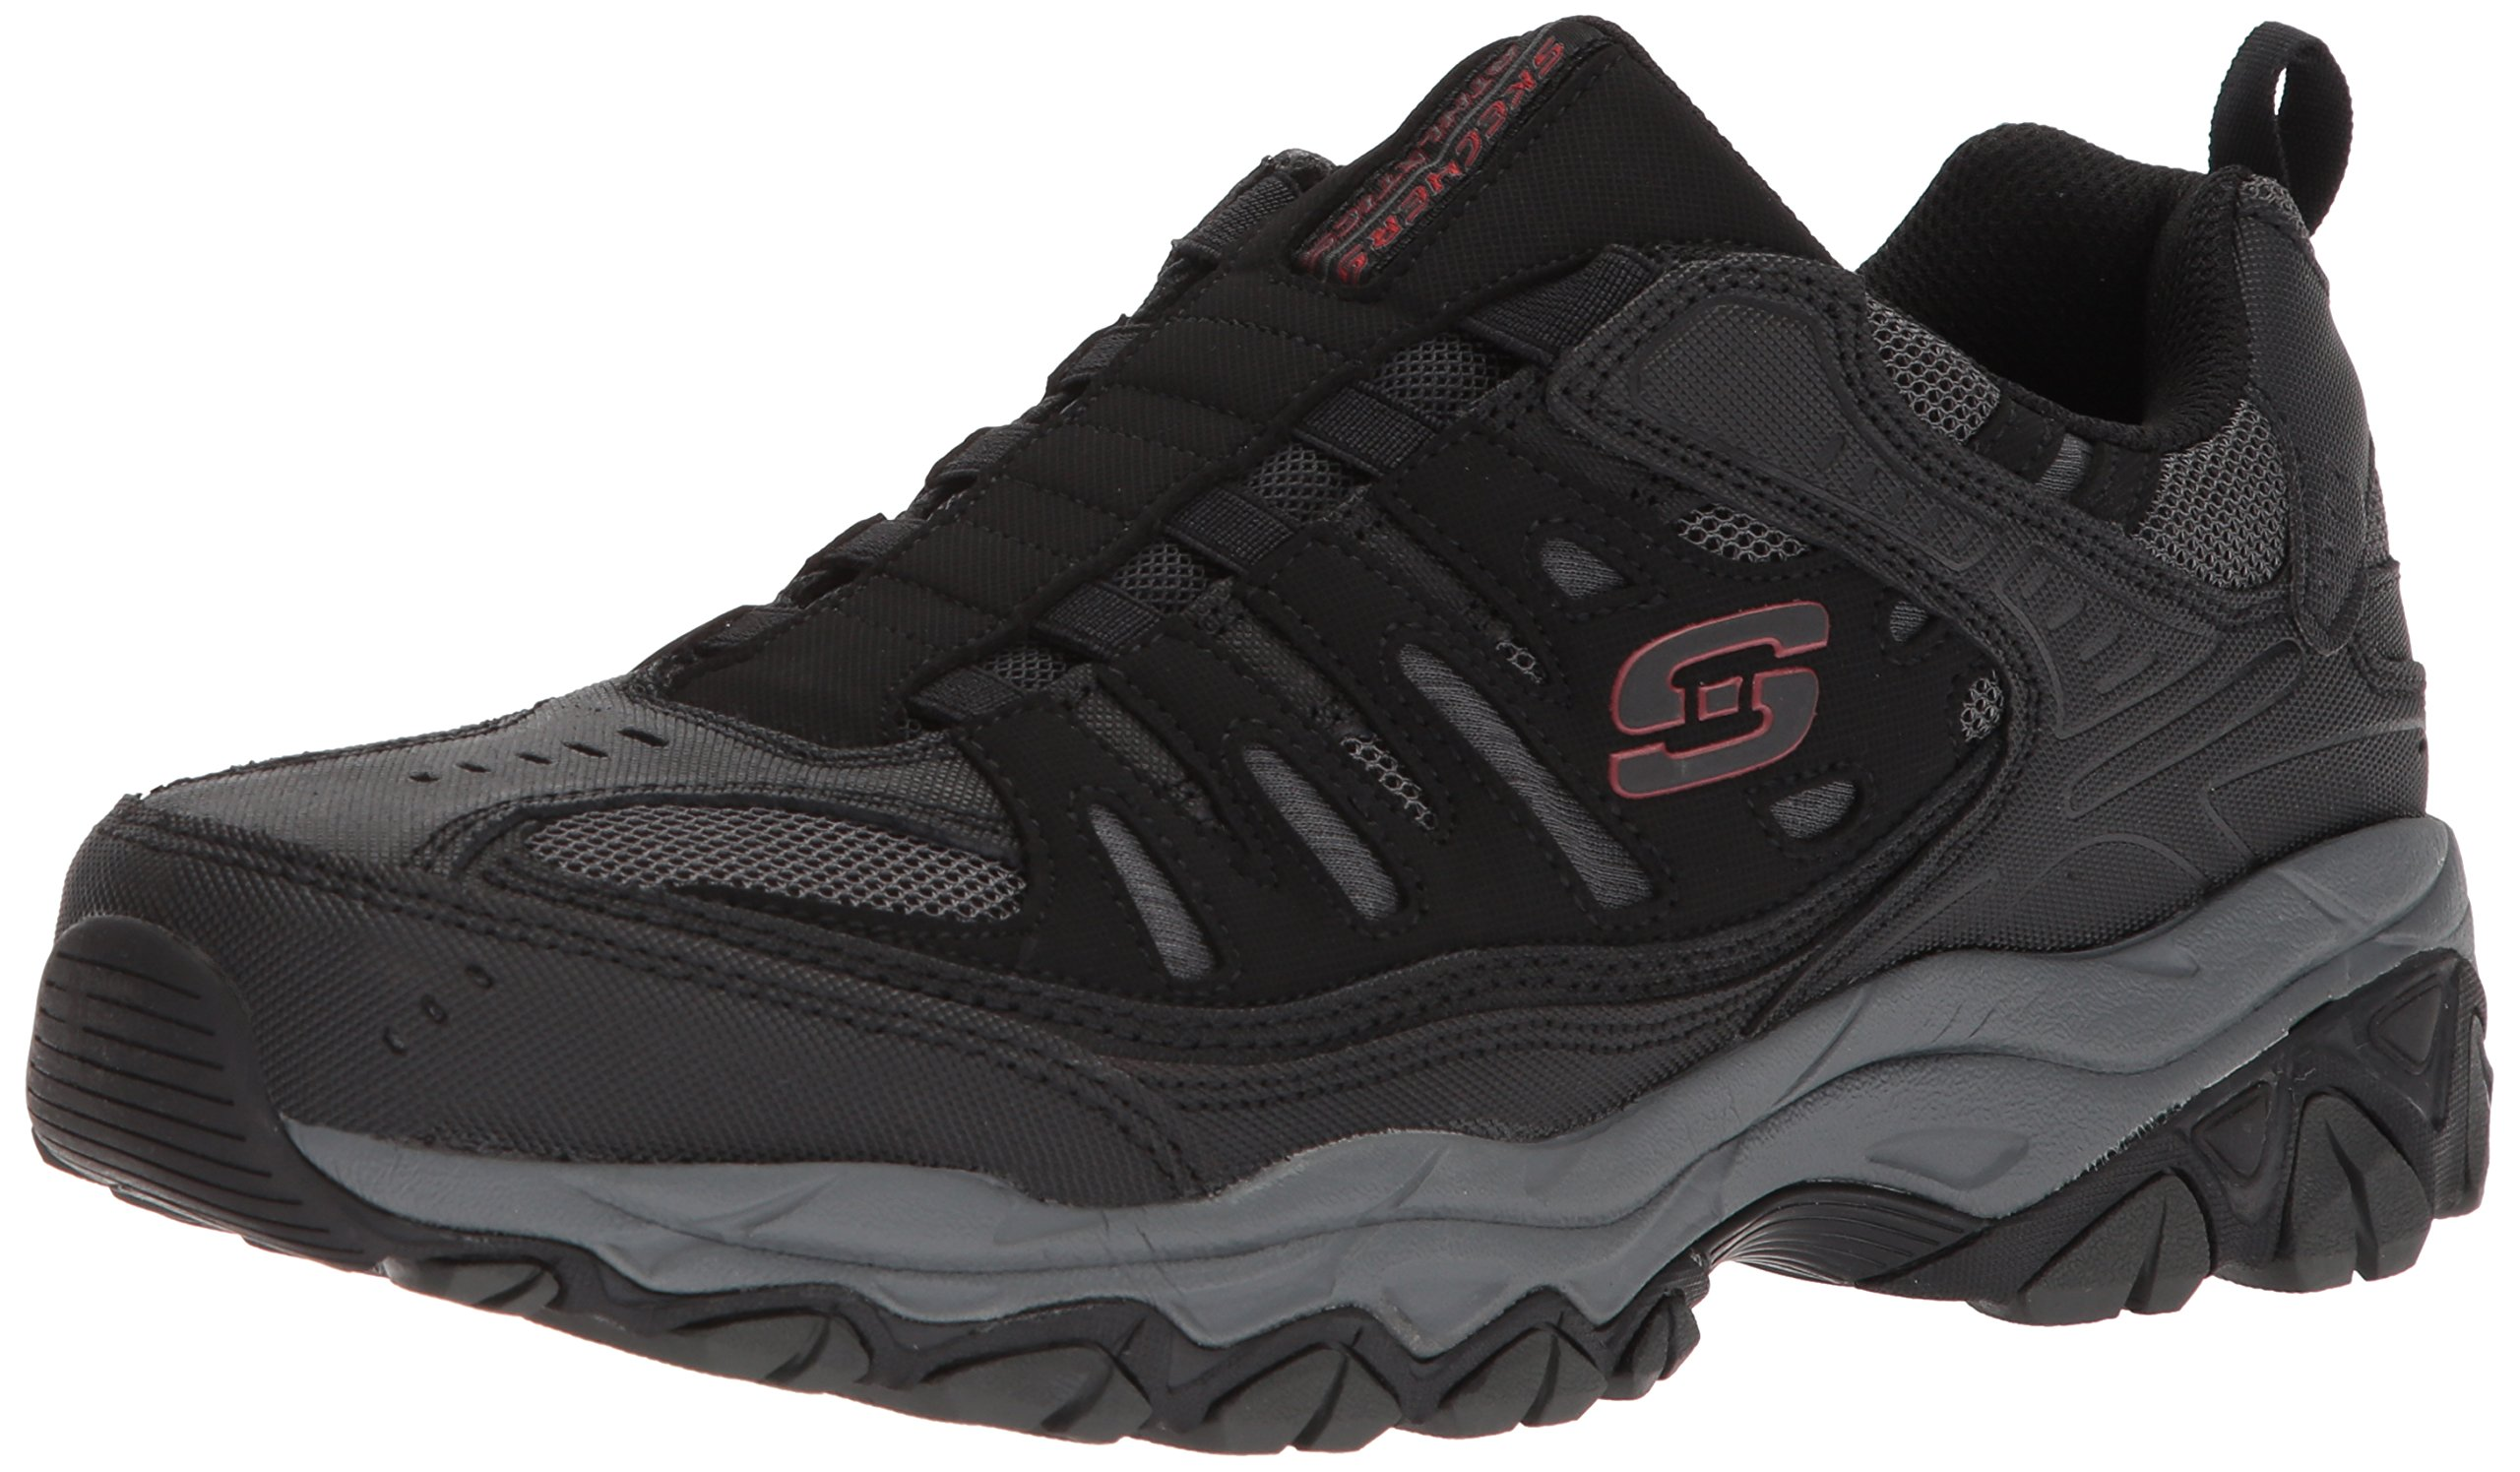 Skechers Afterburn Wonted Loafer charcoal